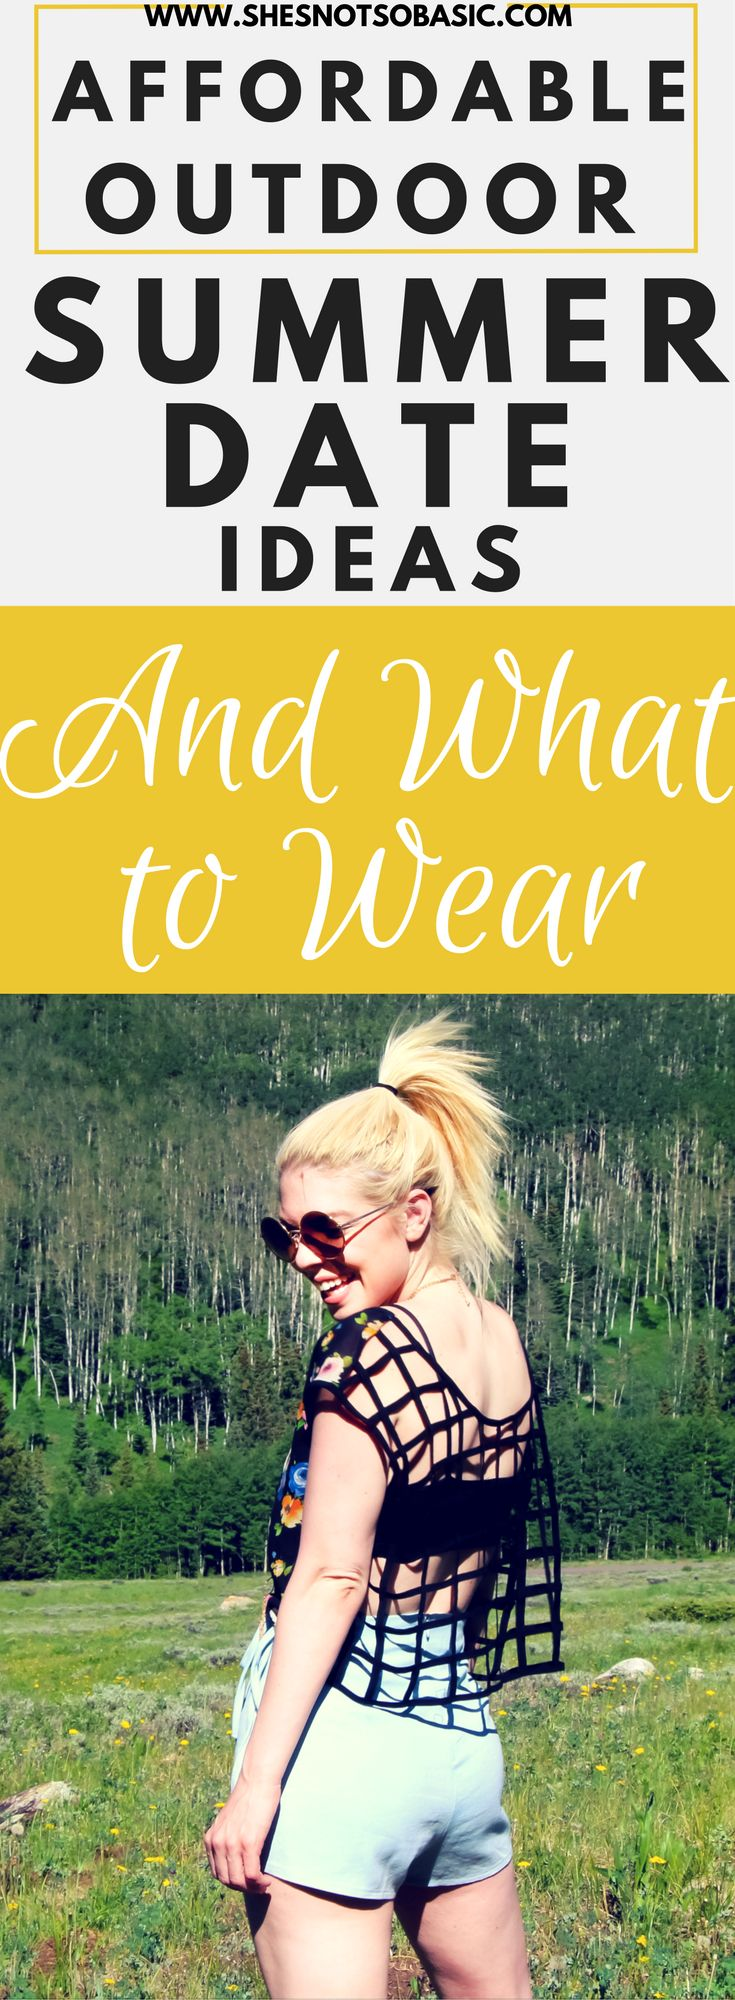 Affordable Summer Date Ideas and What to Wear